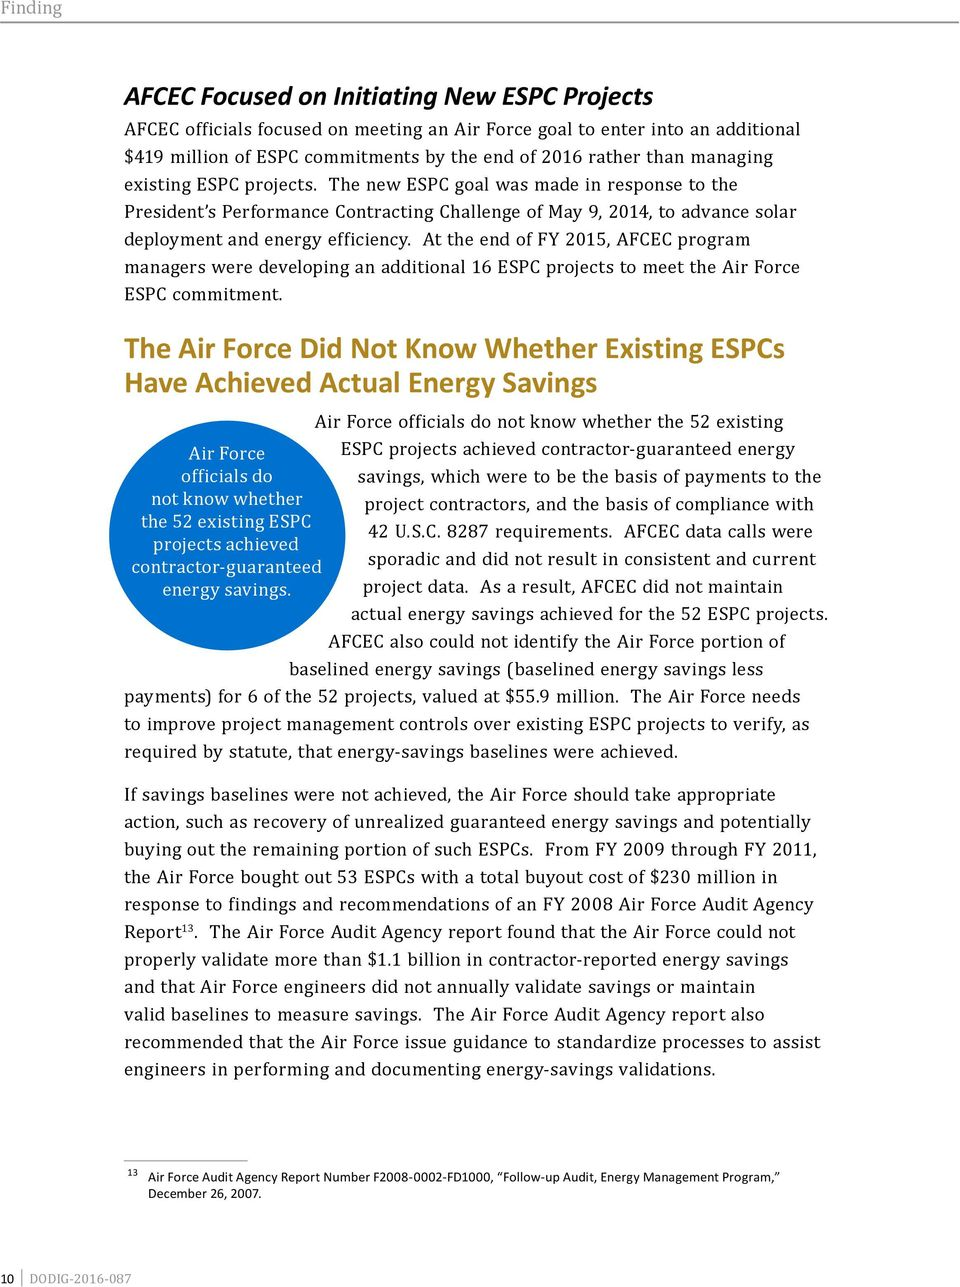 At the end of FY 2015, AFCEC program managers were developing an additional 16 ESPC projects to meet the Air Force ESPC commitment.